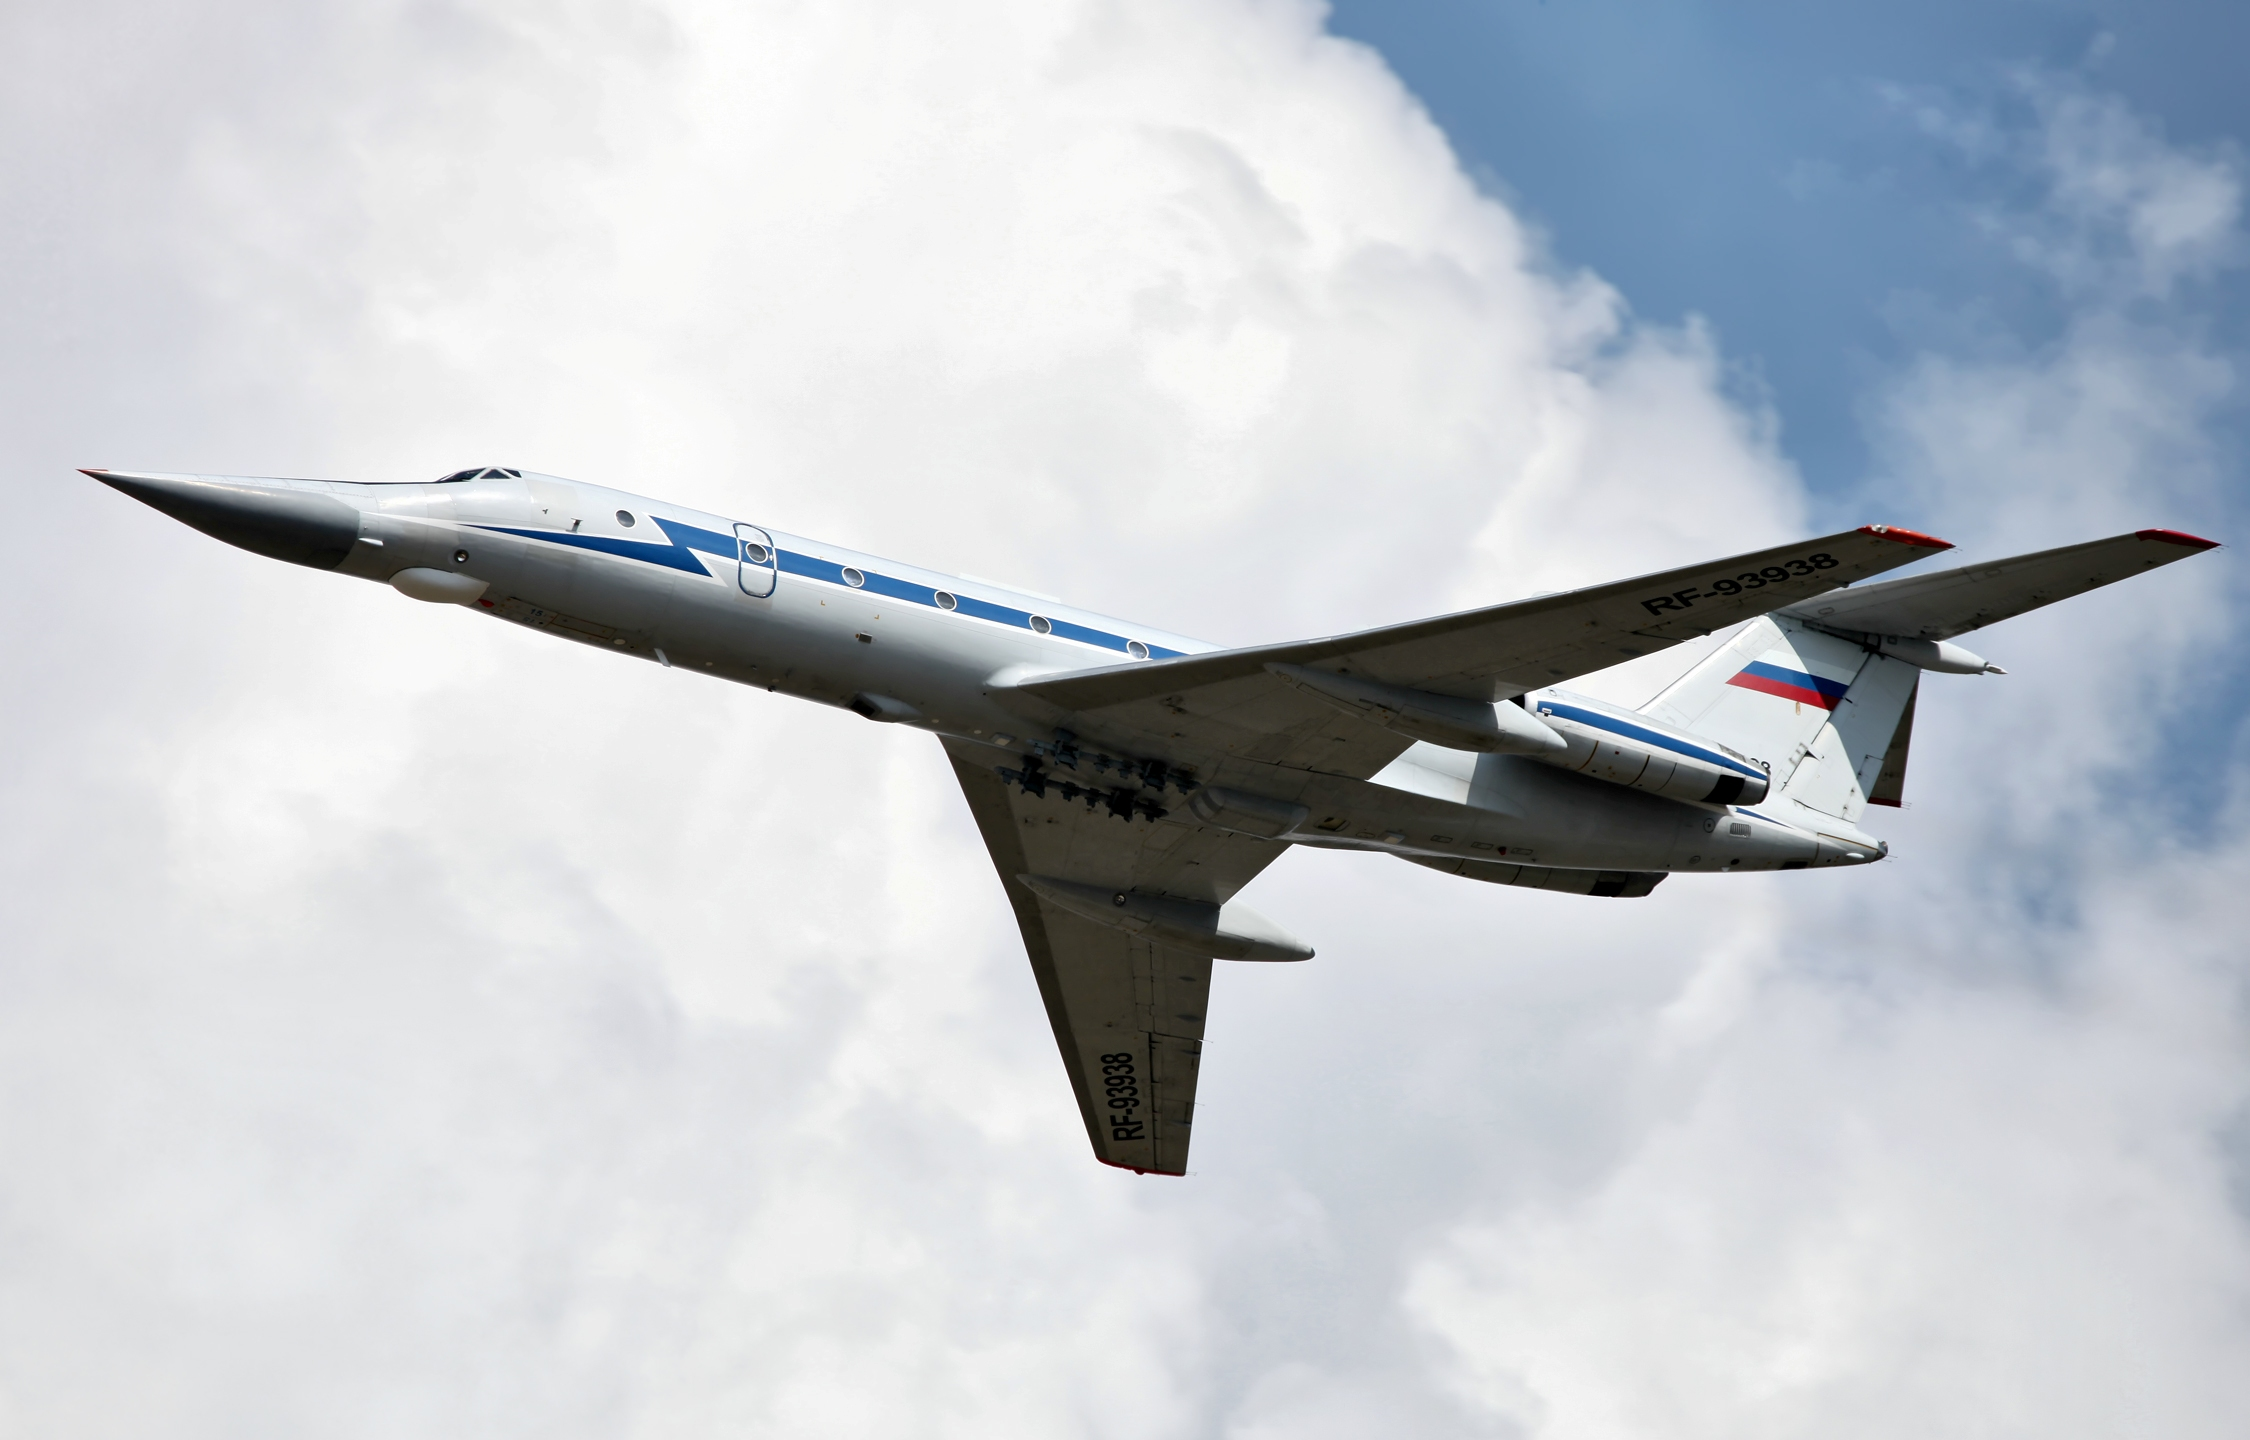 tupolev_tu-134ubk_in_flight_2.jpg